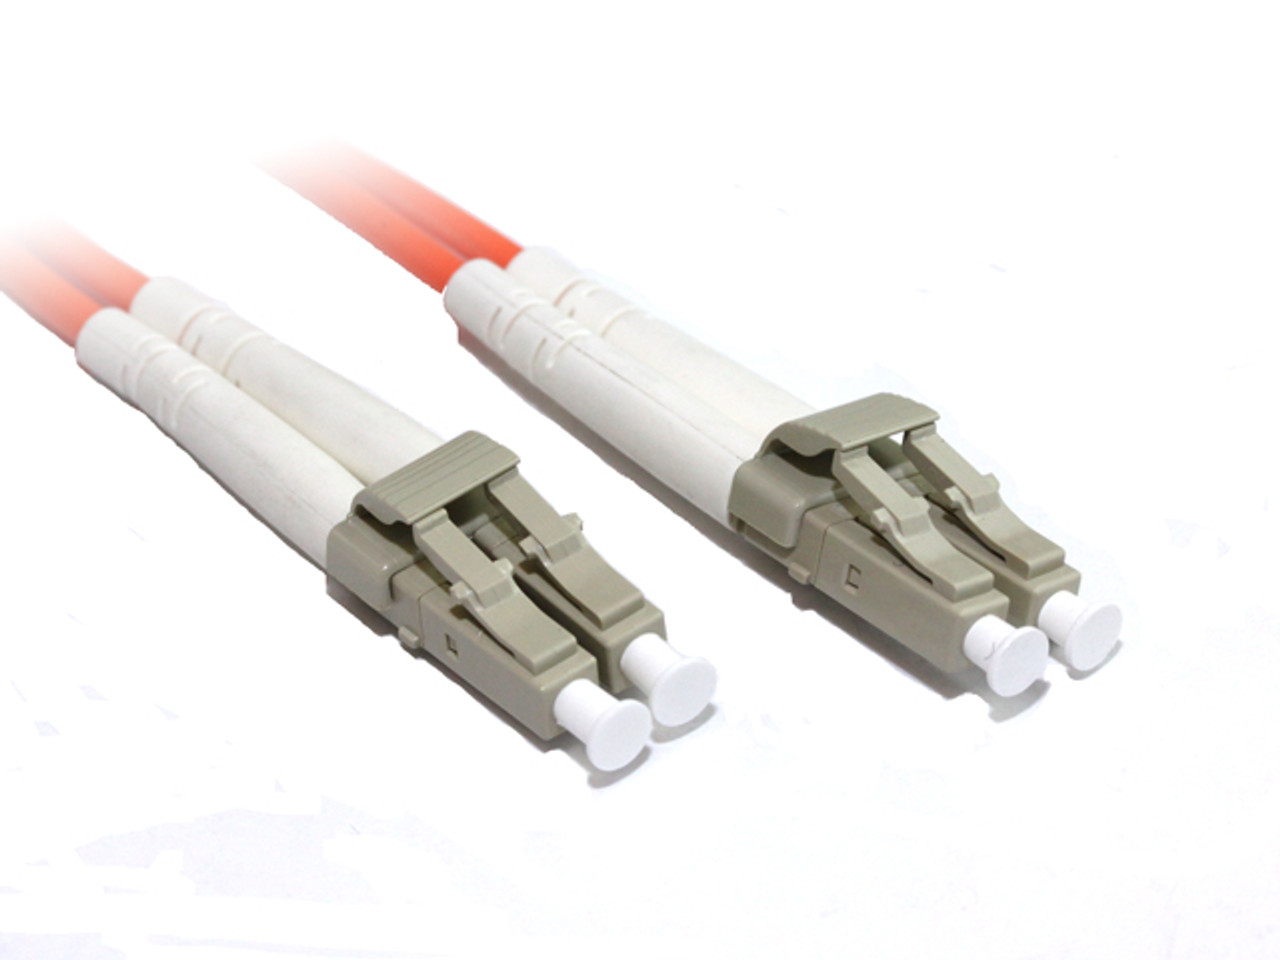 Product image for 5M LC-LC OM2 50/125 Multimode Duplex Fibre Optic Cable   CX Computer Superstore